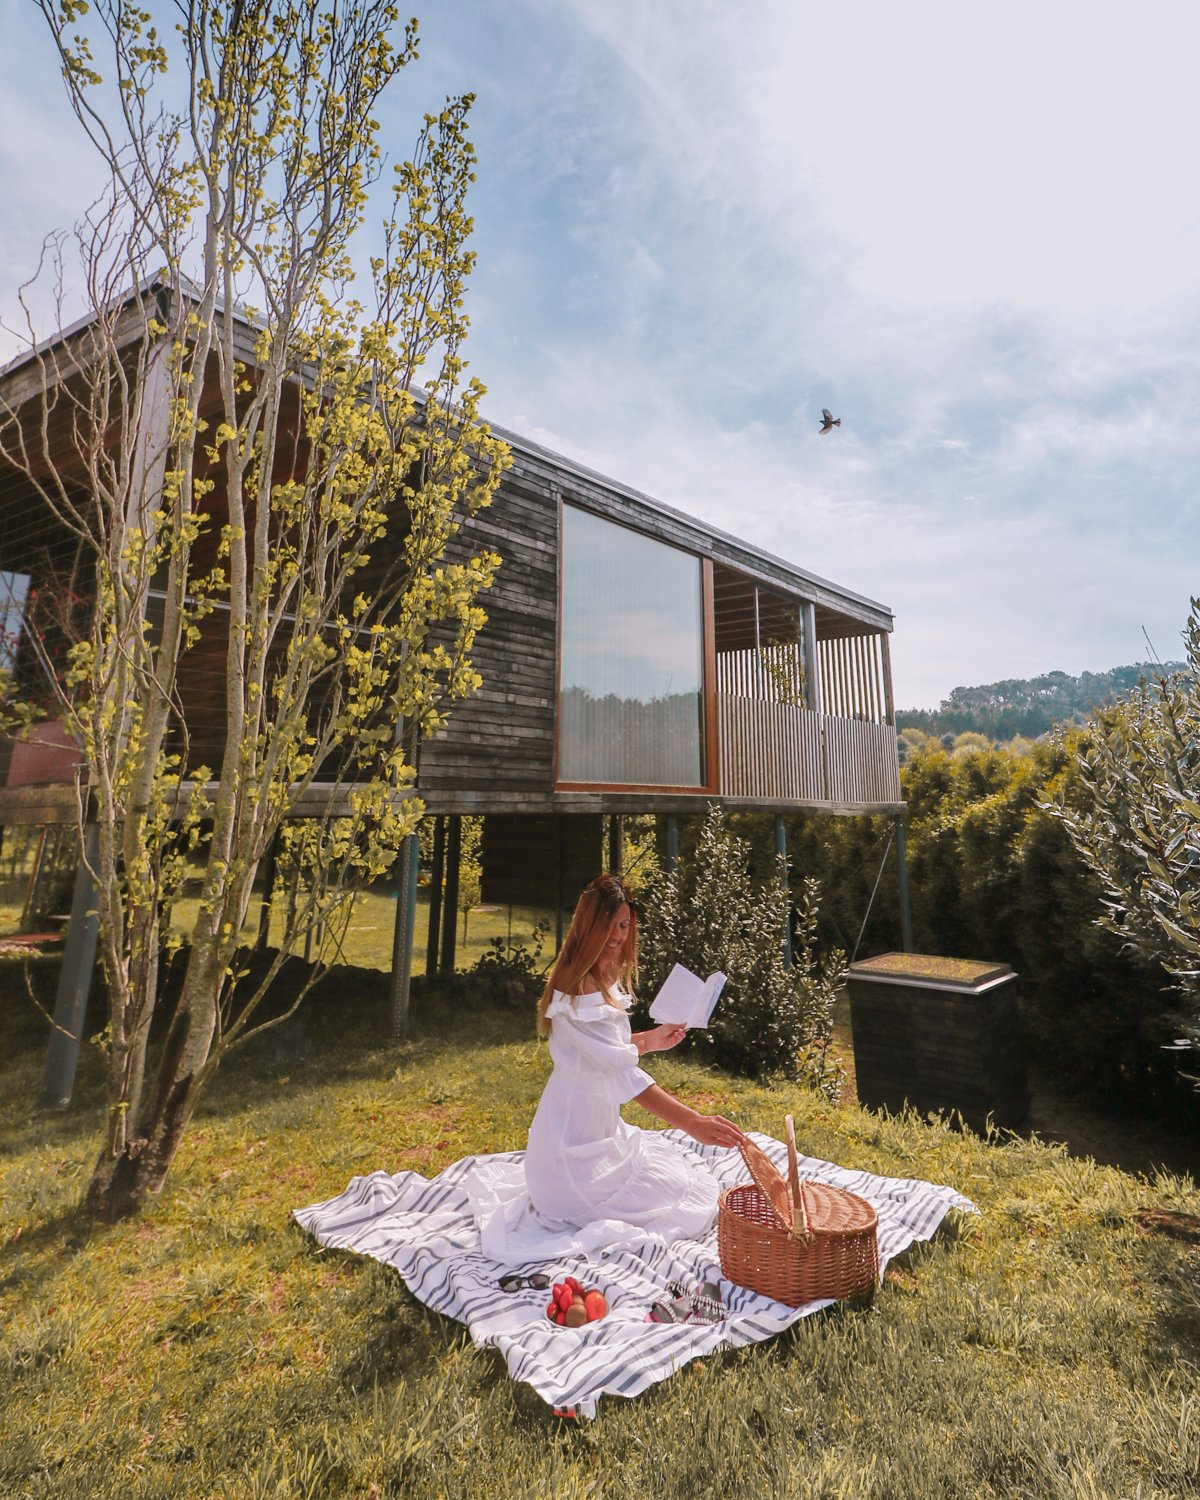 Glamping in Galicia: Staying in a Treehouse